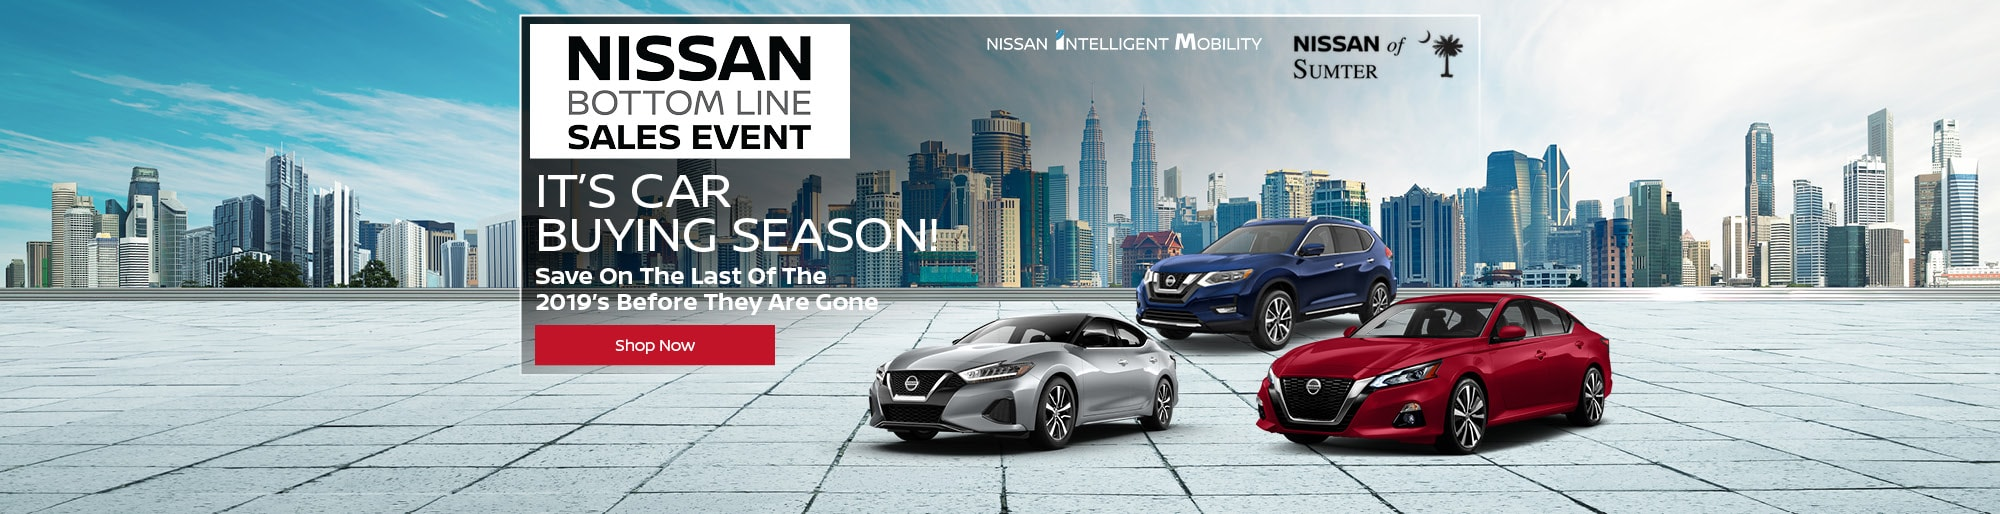 Car Dealerships In Sumter Sc >> Nissan Of Sumter New Nissan Used Car Dealer Near Columbia